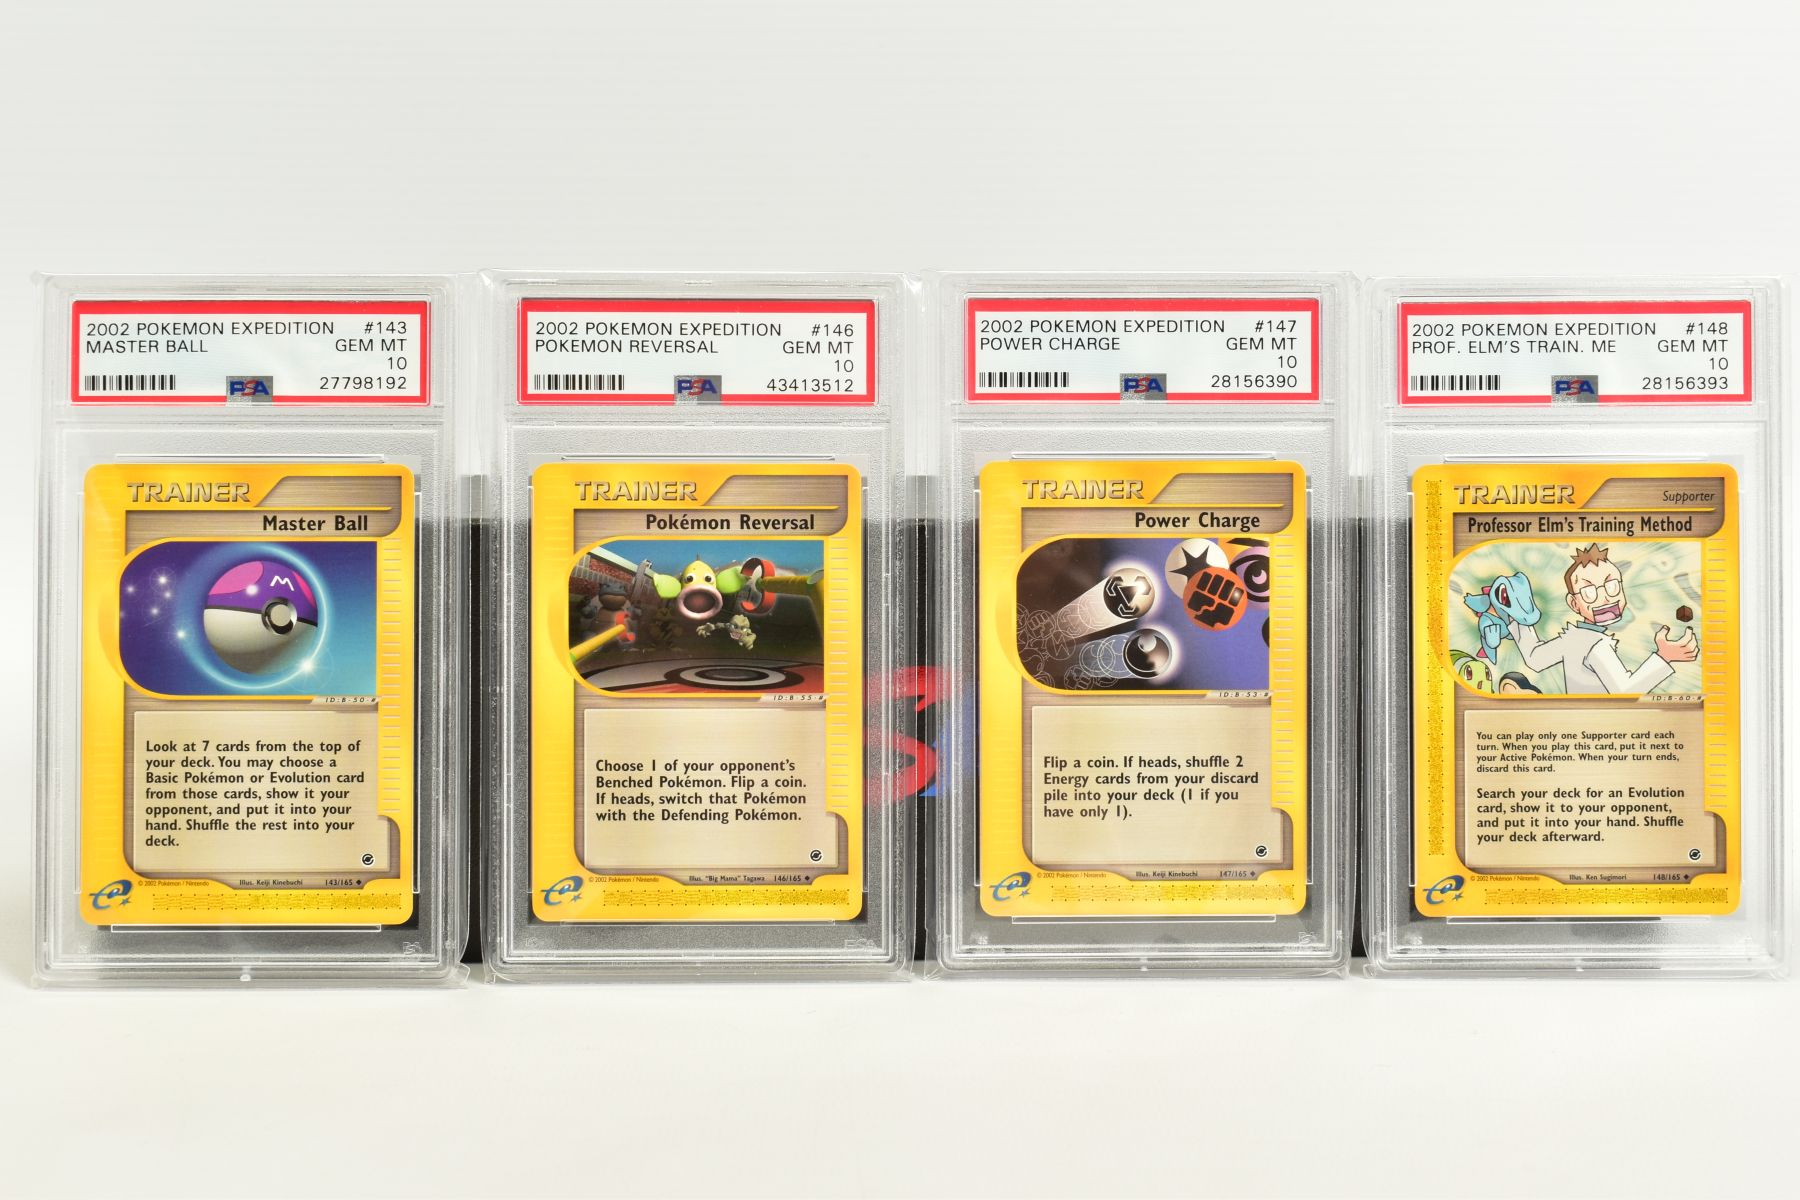 A QUANTITY OF PSA GRADED POKEMON E CARD EXPEDITION BASE SET CARDS, all are graded GEM MINT 10 and - Image 10 of 12